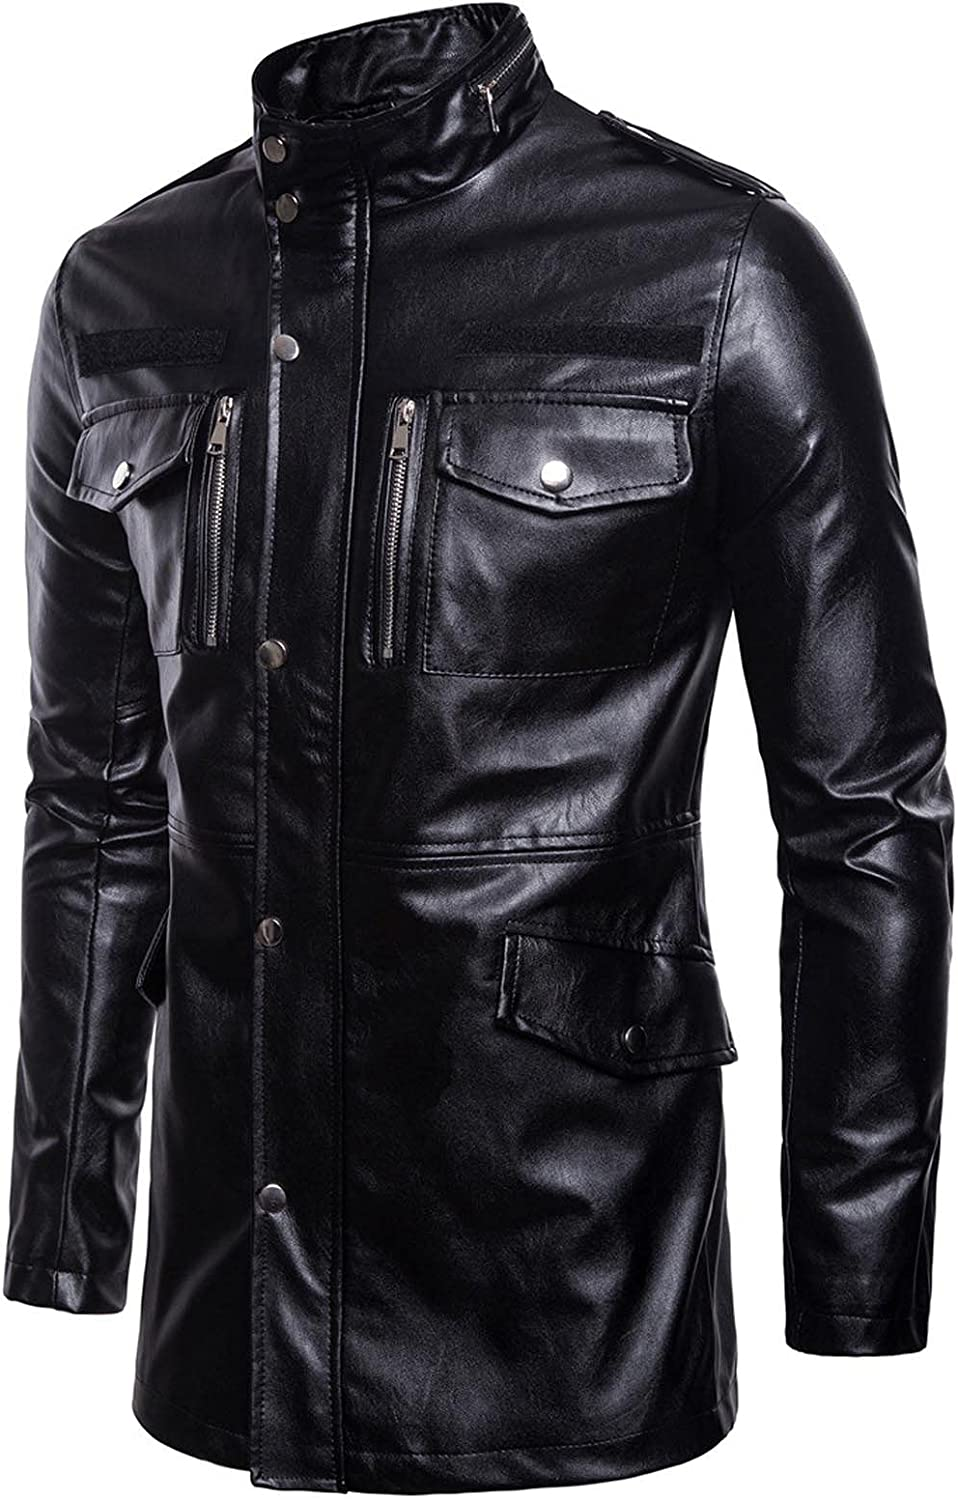 Men's Mid-Length Leather Jacket with Stand-up Collar Four-Pocket Motorcycle Leather Jacket Black- 2XL